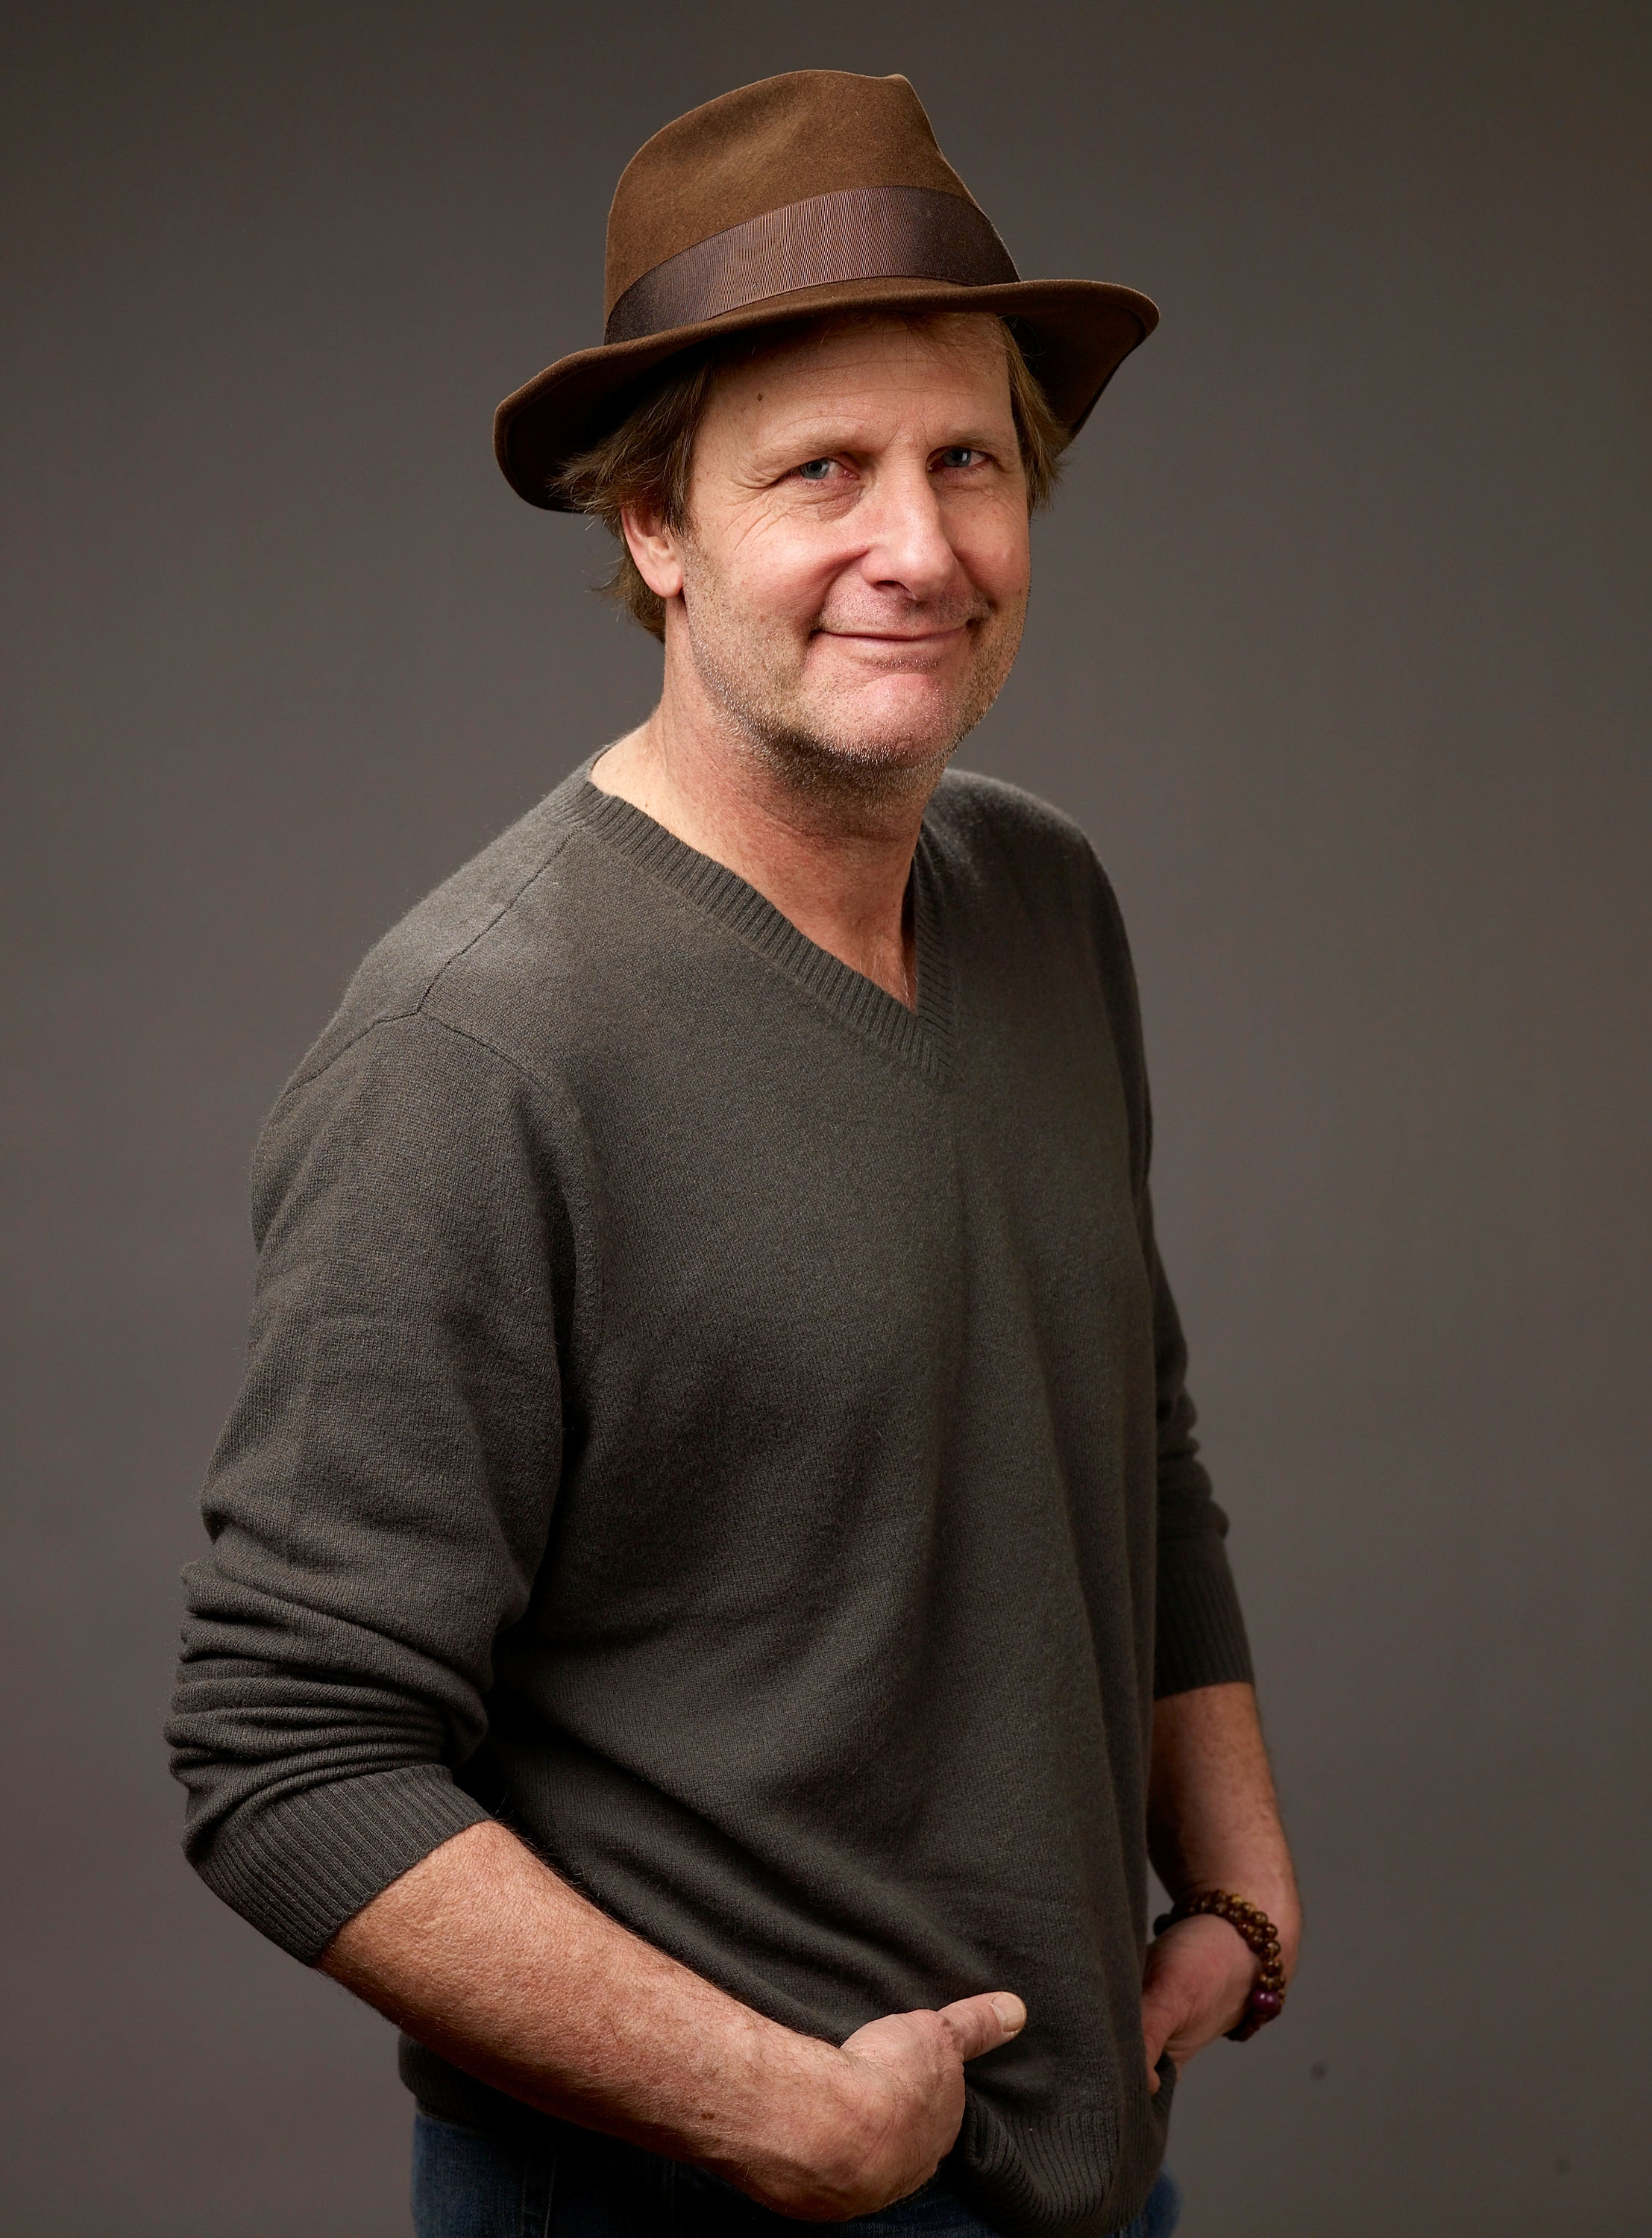 jeff daniels best moviesjeff daniels guitar, jeff daniels young, jeff daniels height, jeff daniels net worth, jeff daniels wife, jeff daniels twitter, jeff daniels why america is great, jeff daniels emma stone, jeff daniels instagram, jeff daniels movie speech, jeff daniels astrotheme, jeff daniels film, jeff daniels on trump, jeff daniels drugs, jeff daniels filme, jeff daniels movies, jeff daniels speech about america, jeff daniels linkedin, jeff daniels best movies